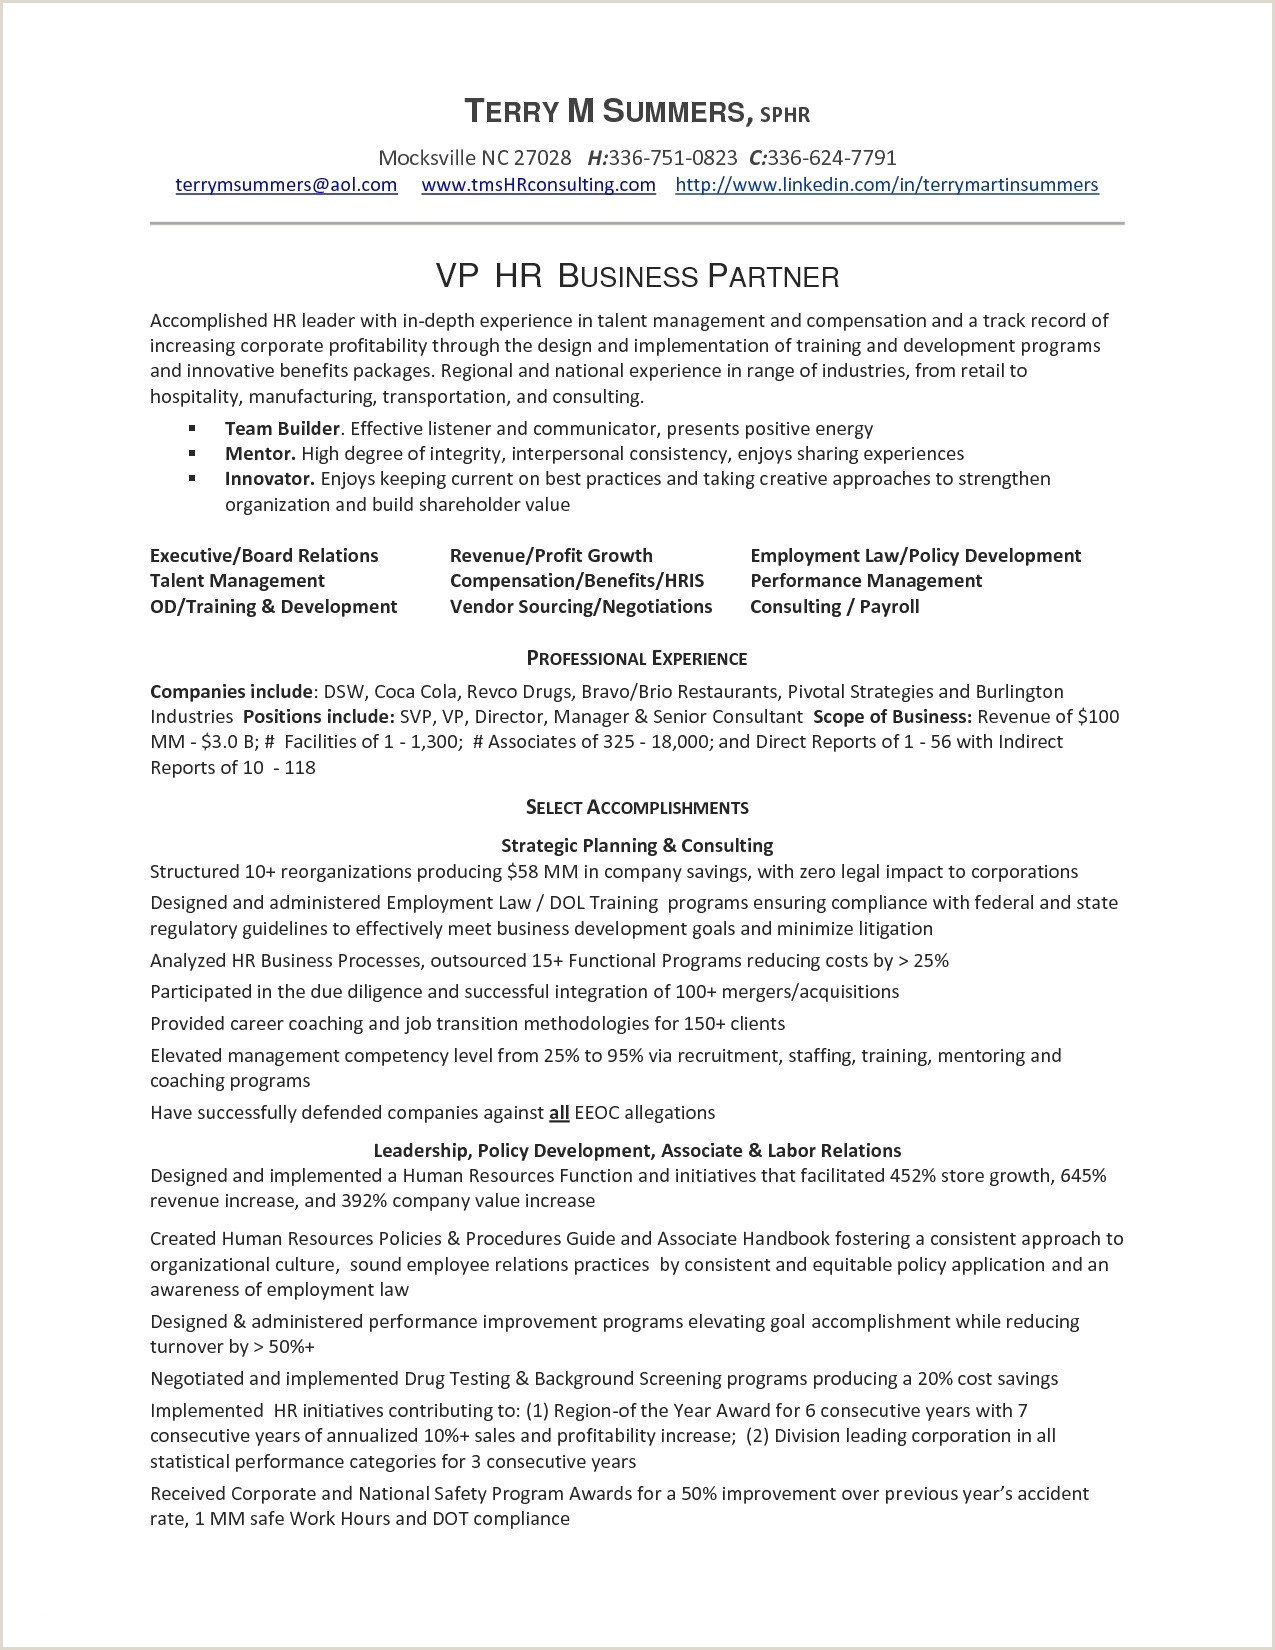 Cv format Of Fresher Electrical Engineer Electrical Engineer Sample Resume Examples Sample Resume